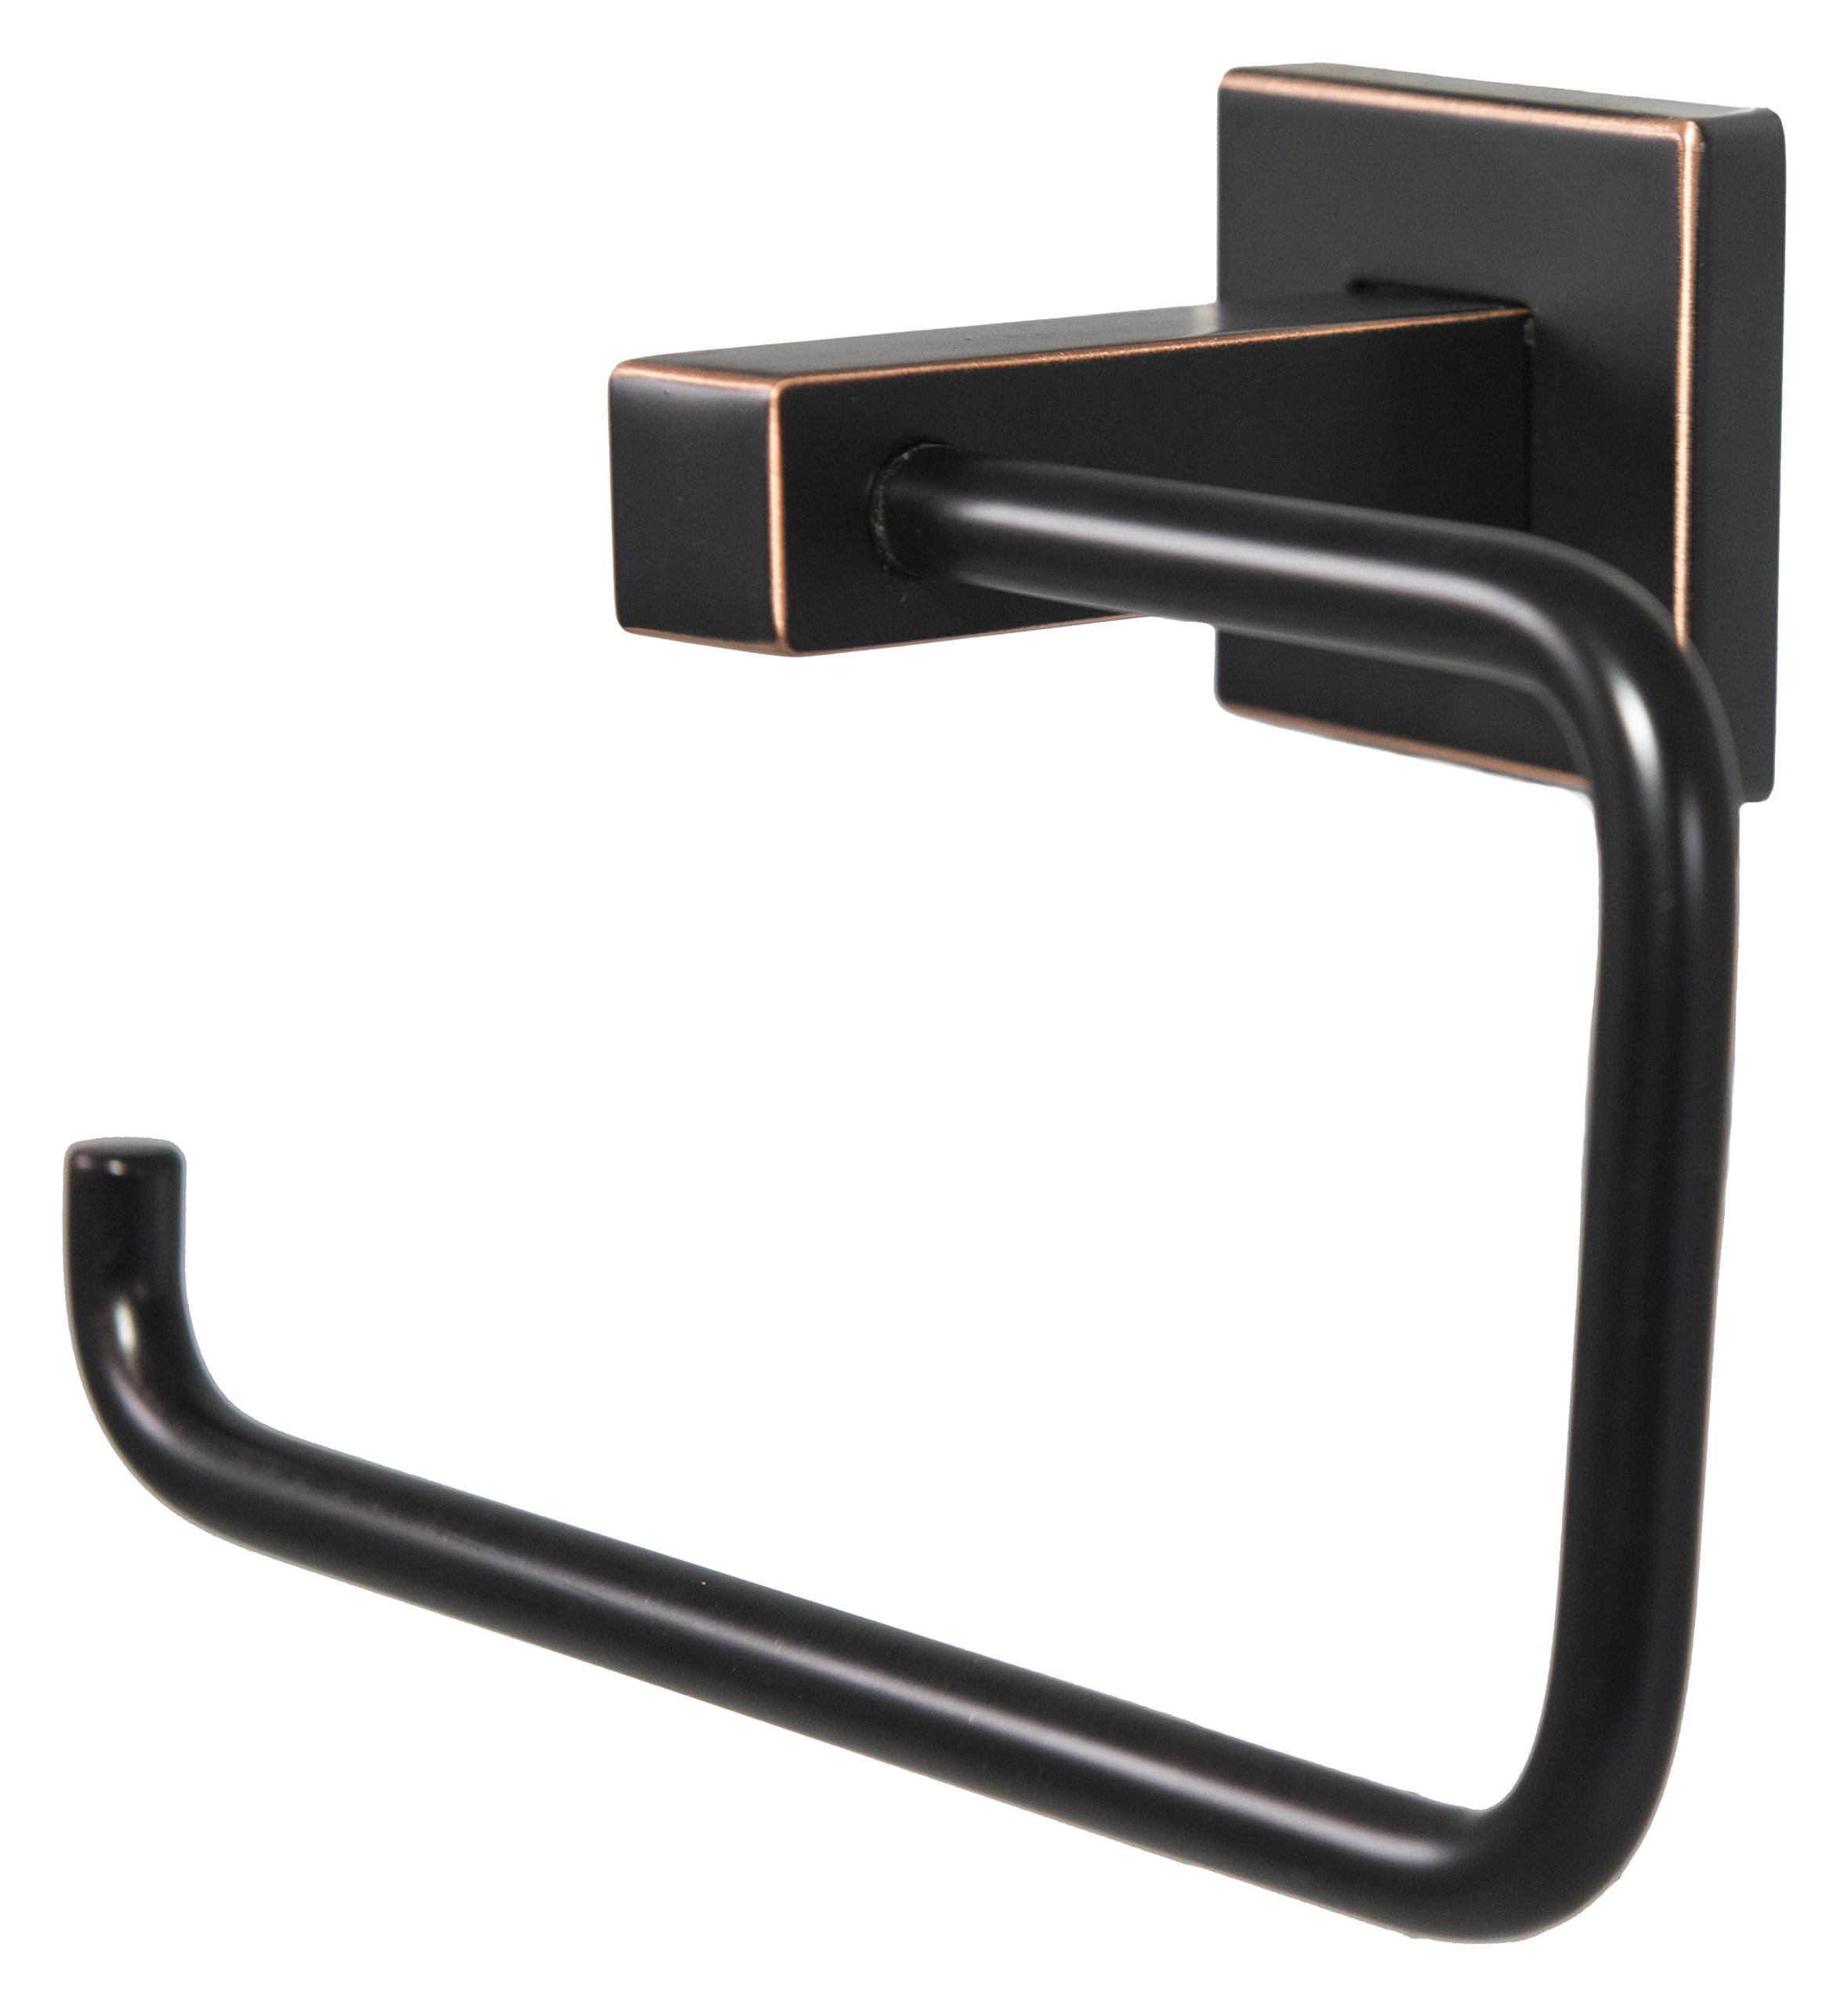 Preferred Bath Accessories 1004-ORB Primo Collection Towel Ring, Brushed Nickel, Oil Rubbed Bronze